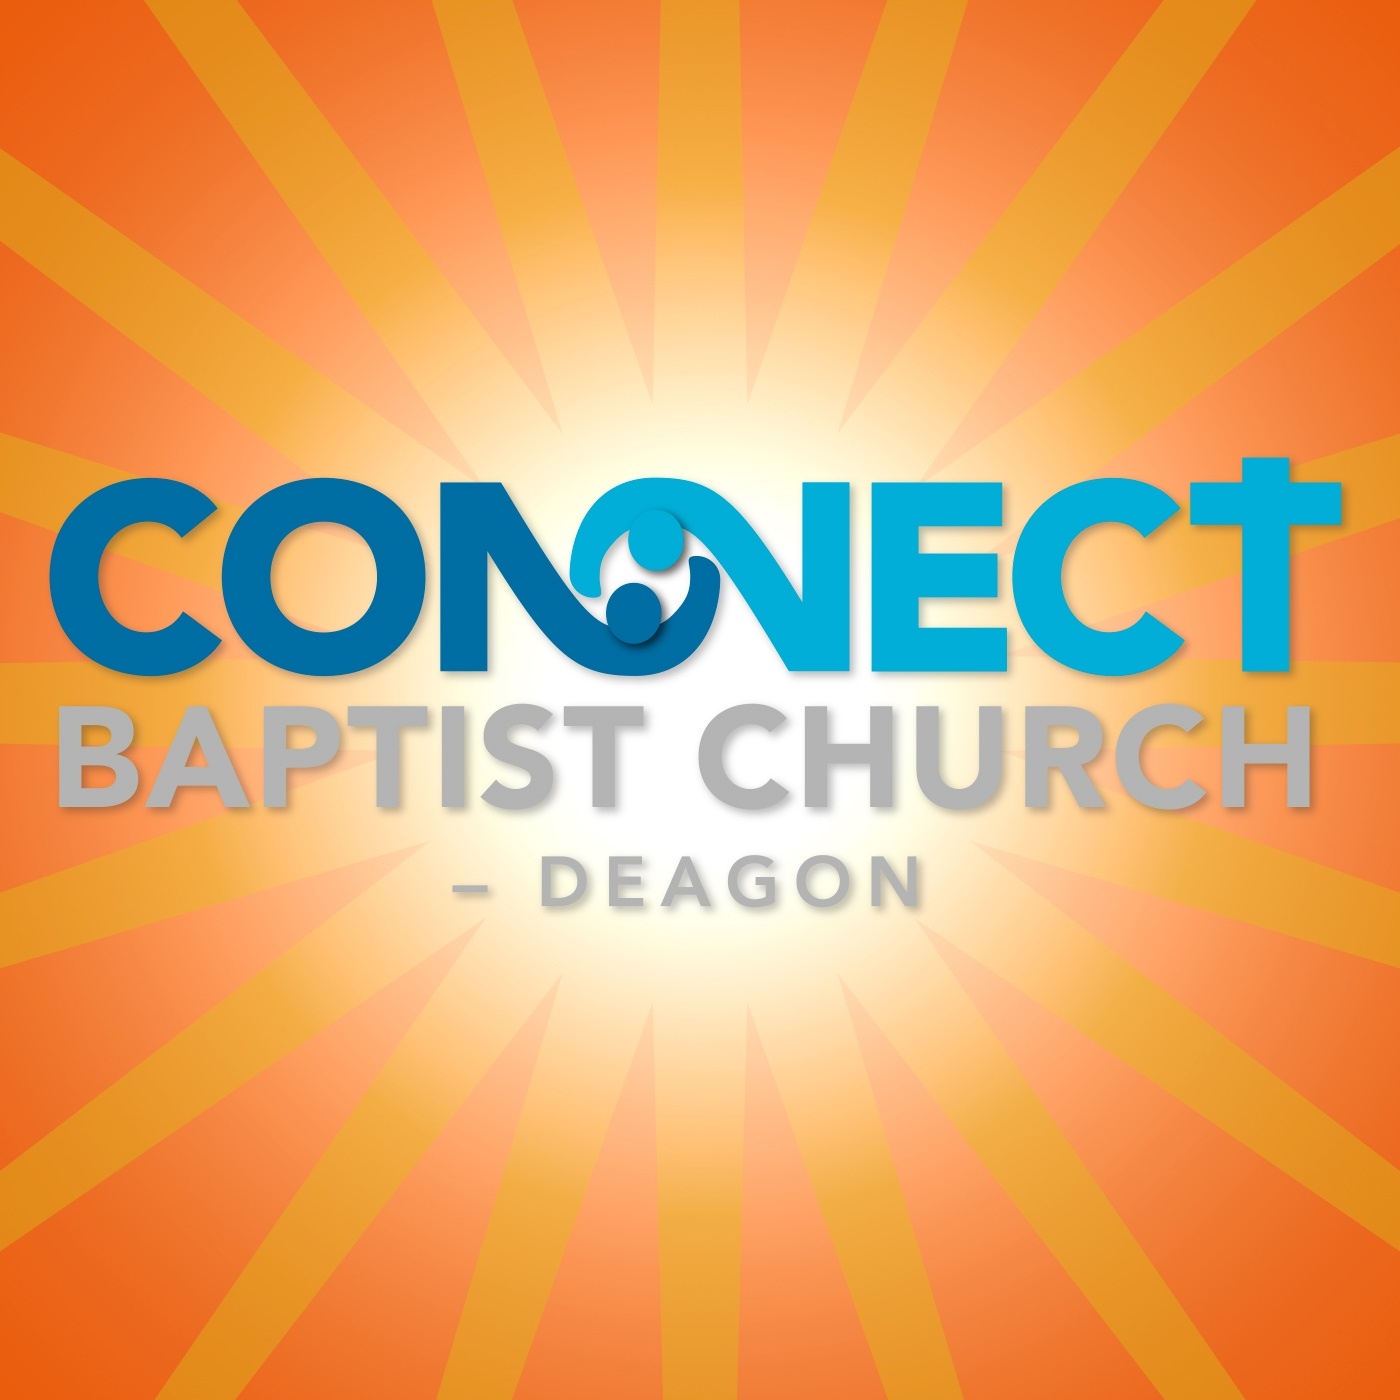 Connect Baptist Church - Deagon Messages